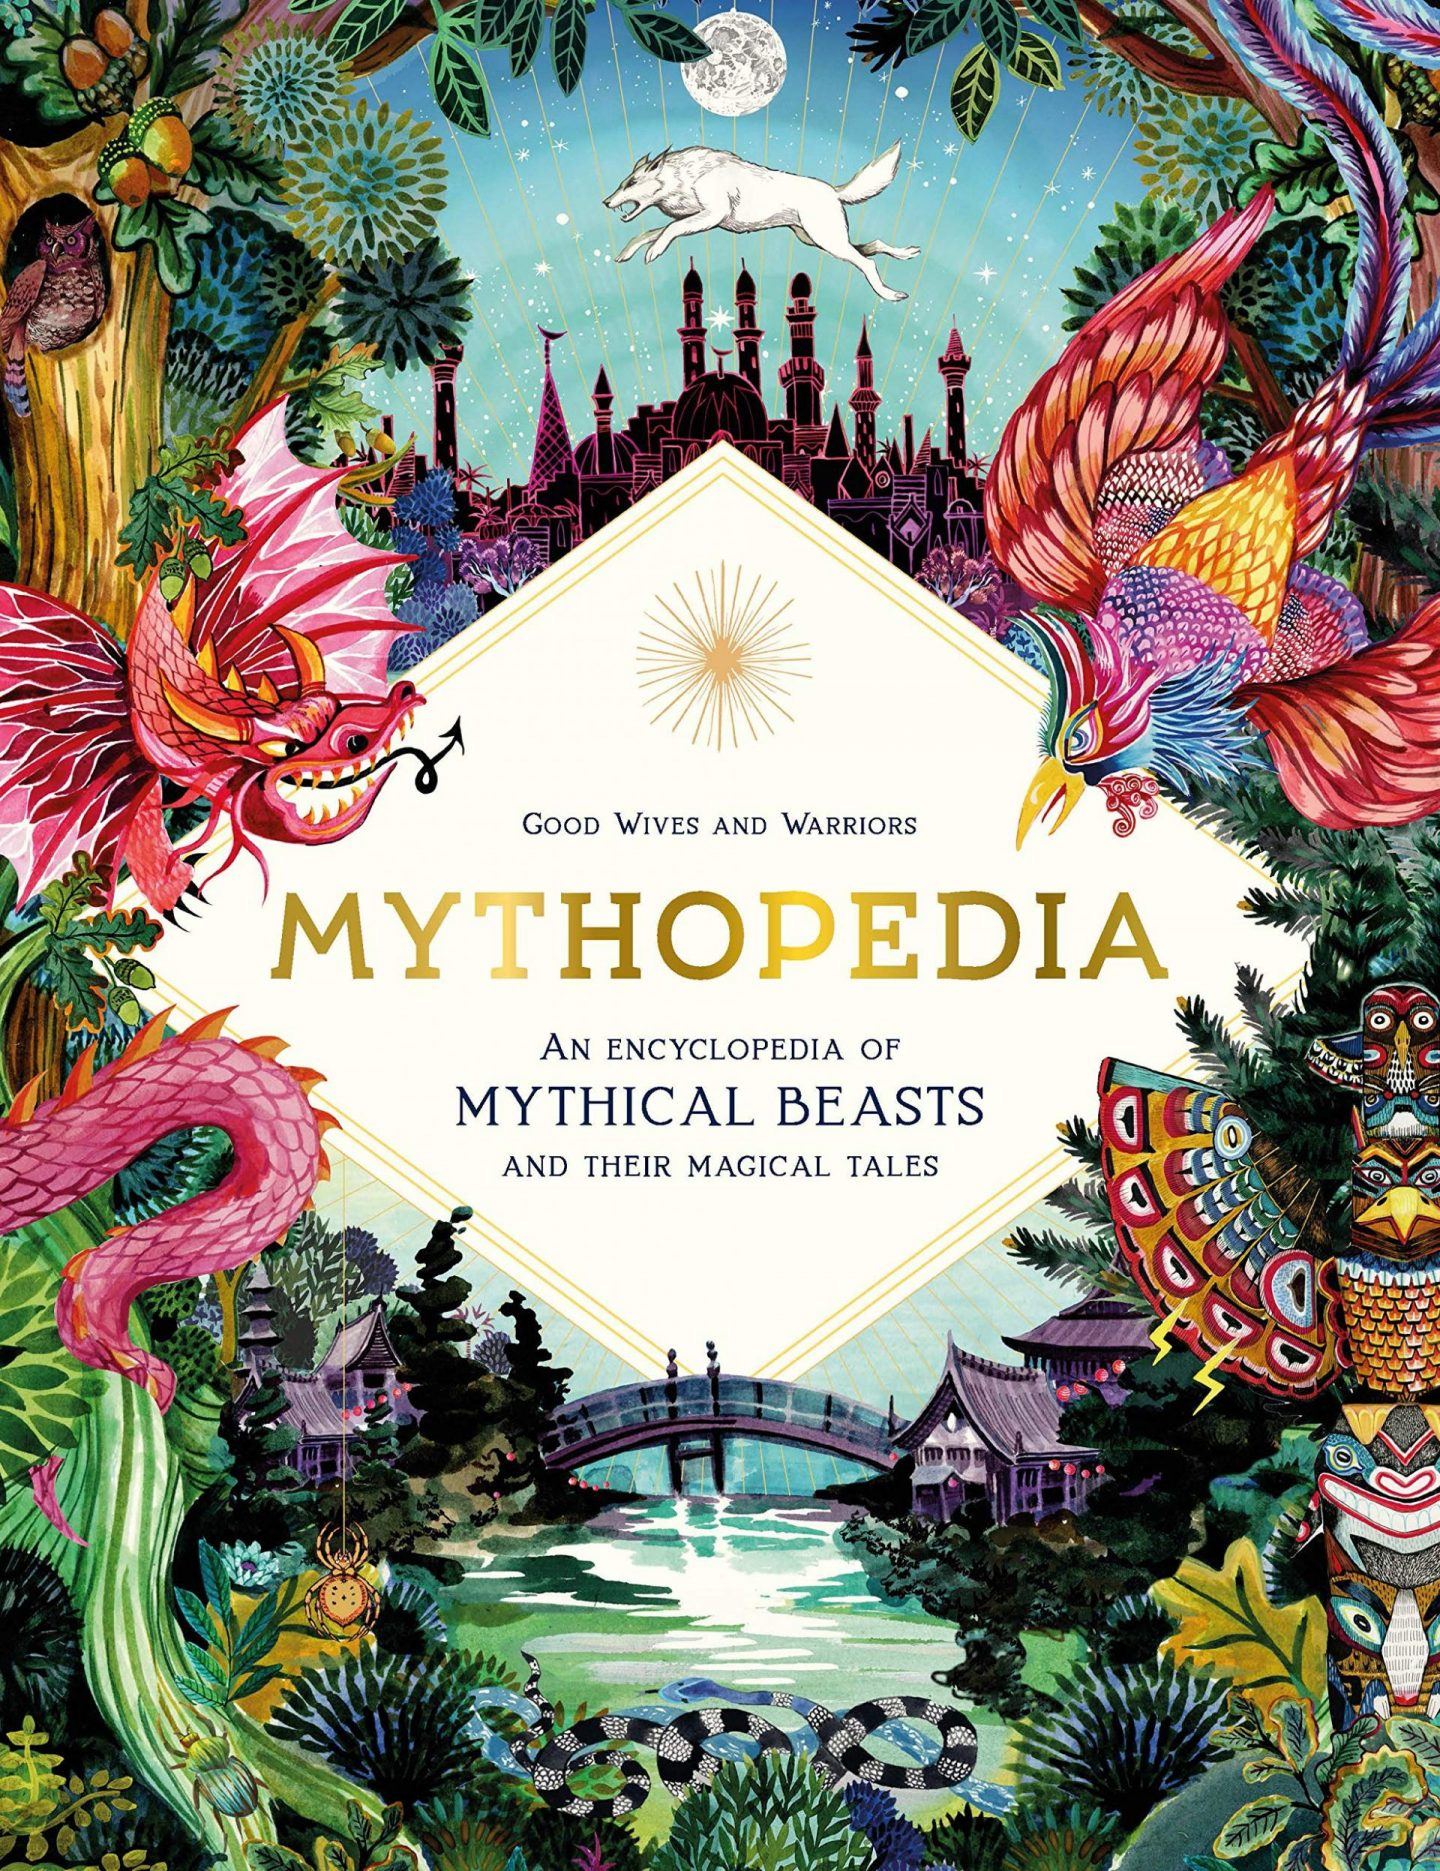 The cover of Mythopedia by Good Wives and Warriors with mythical creatures in bright colours around the title in a white diamond shape.